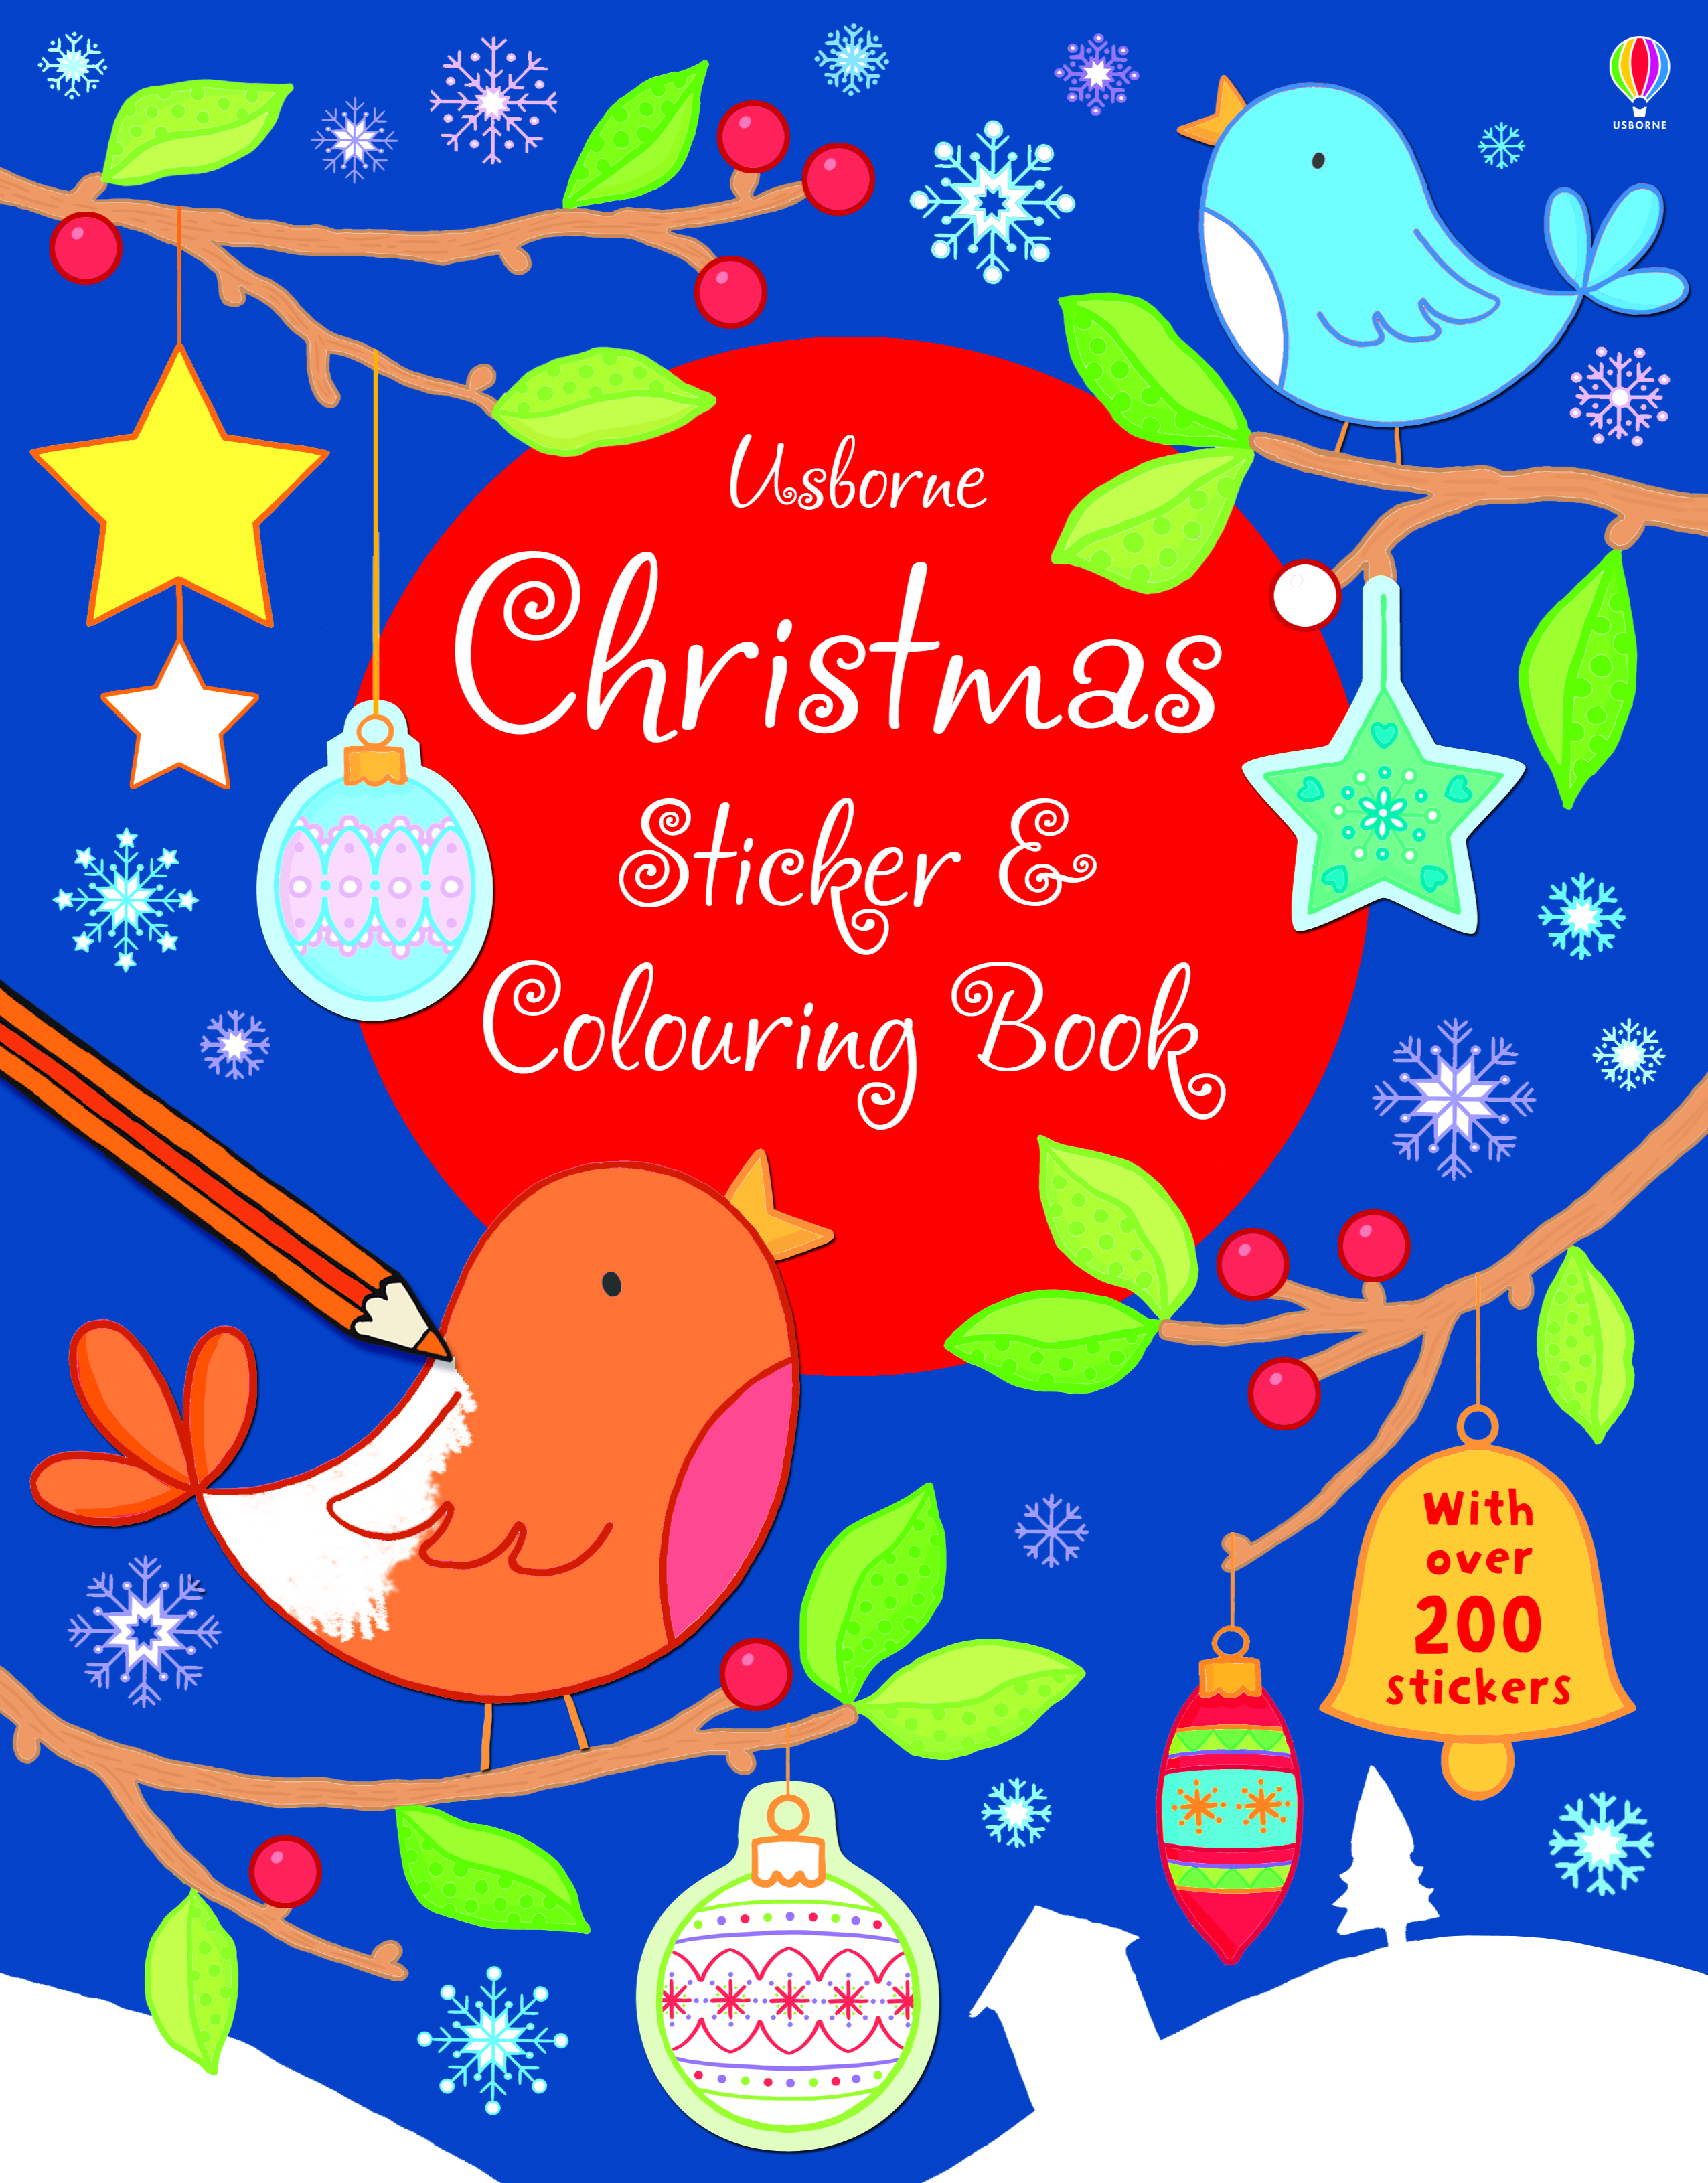 9781474906418?width\u003d960\u0026mode\u003dmin together with the usborne book of drawing doodling and coloring for christmas on usborne christmas coloring book additionally usborne books more christmas pocket doodling and coloring book on usborne christmas coloring book furthermore christmas colouring books from usborne on usborne christmas coloring book along with 15 adult coloring book on usborne christmas coloring book